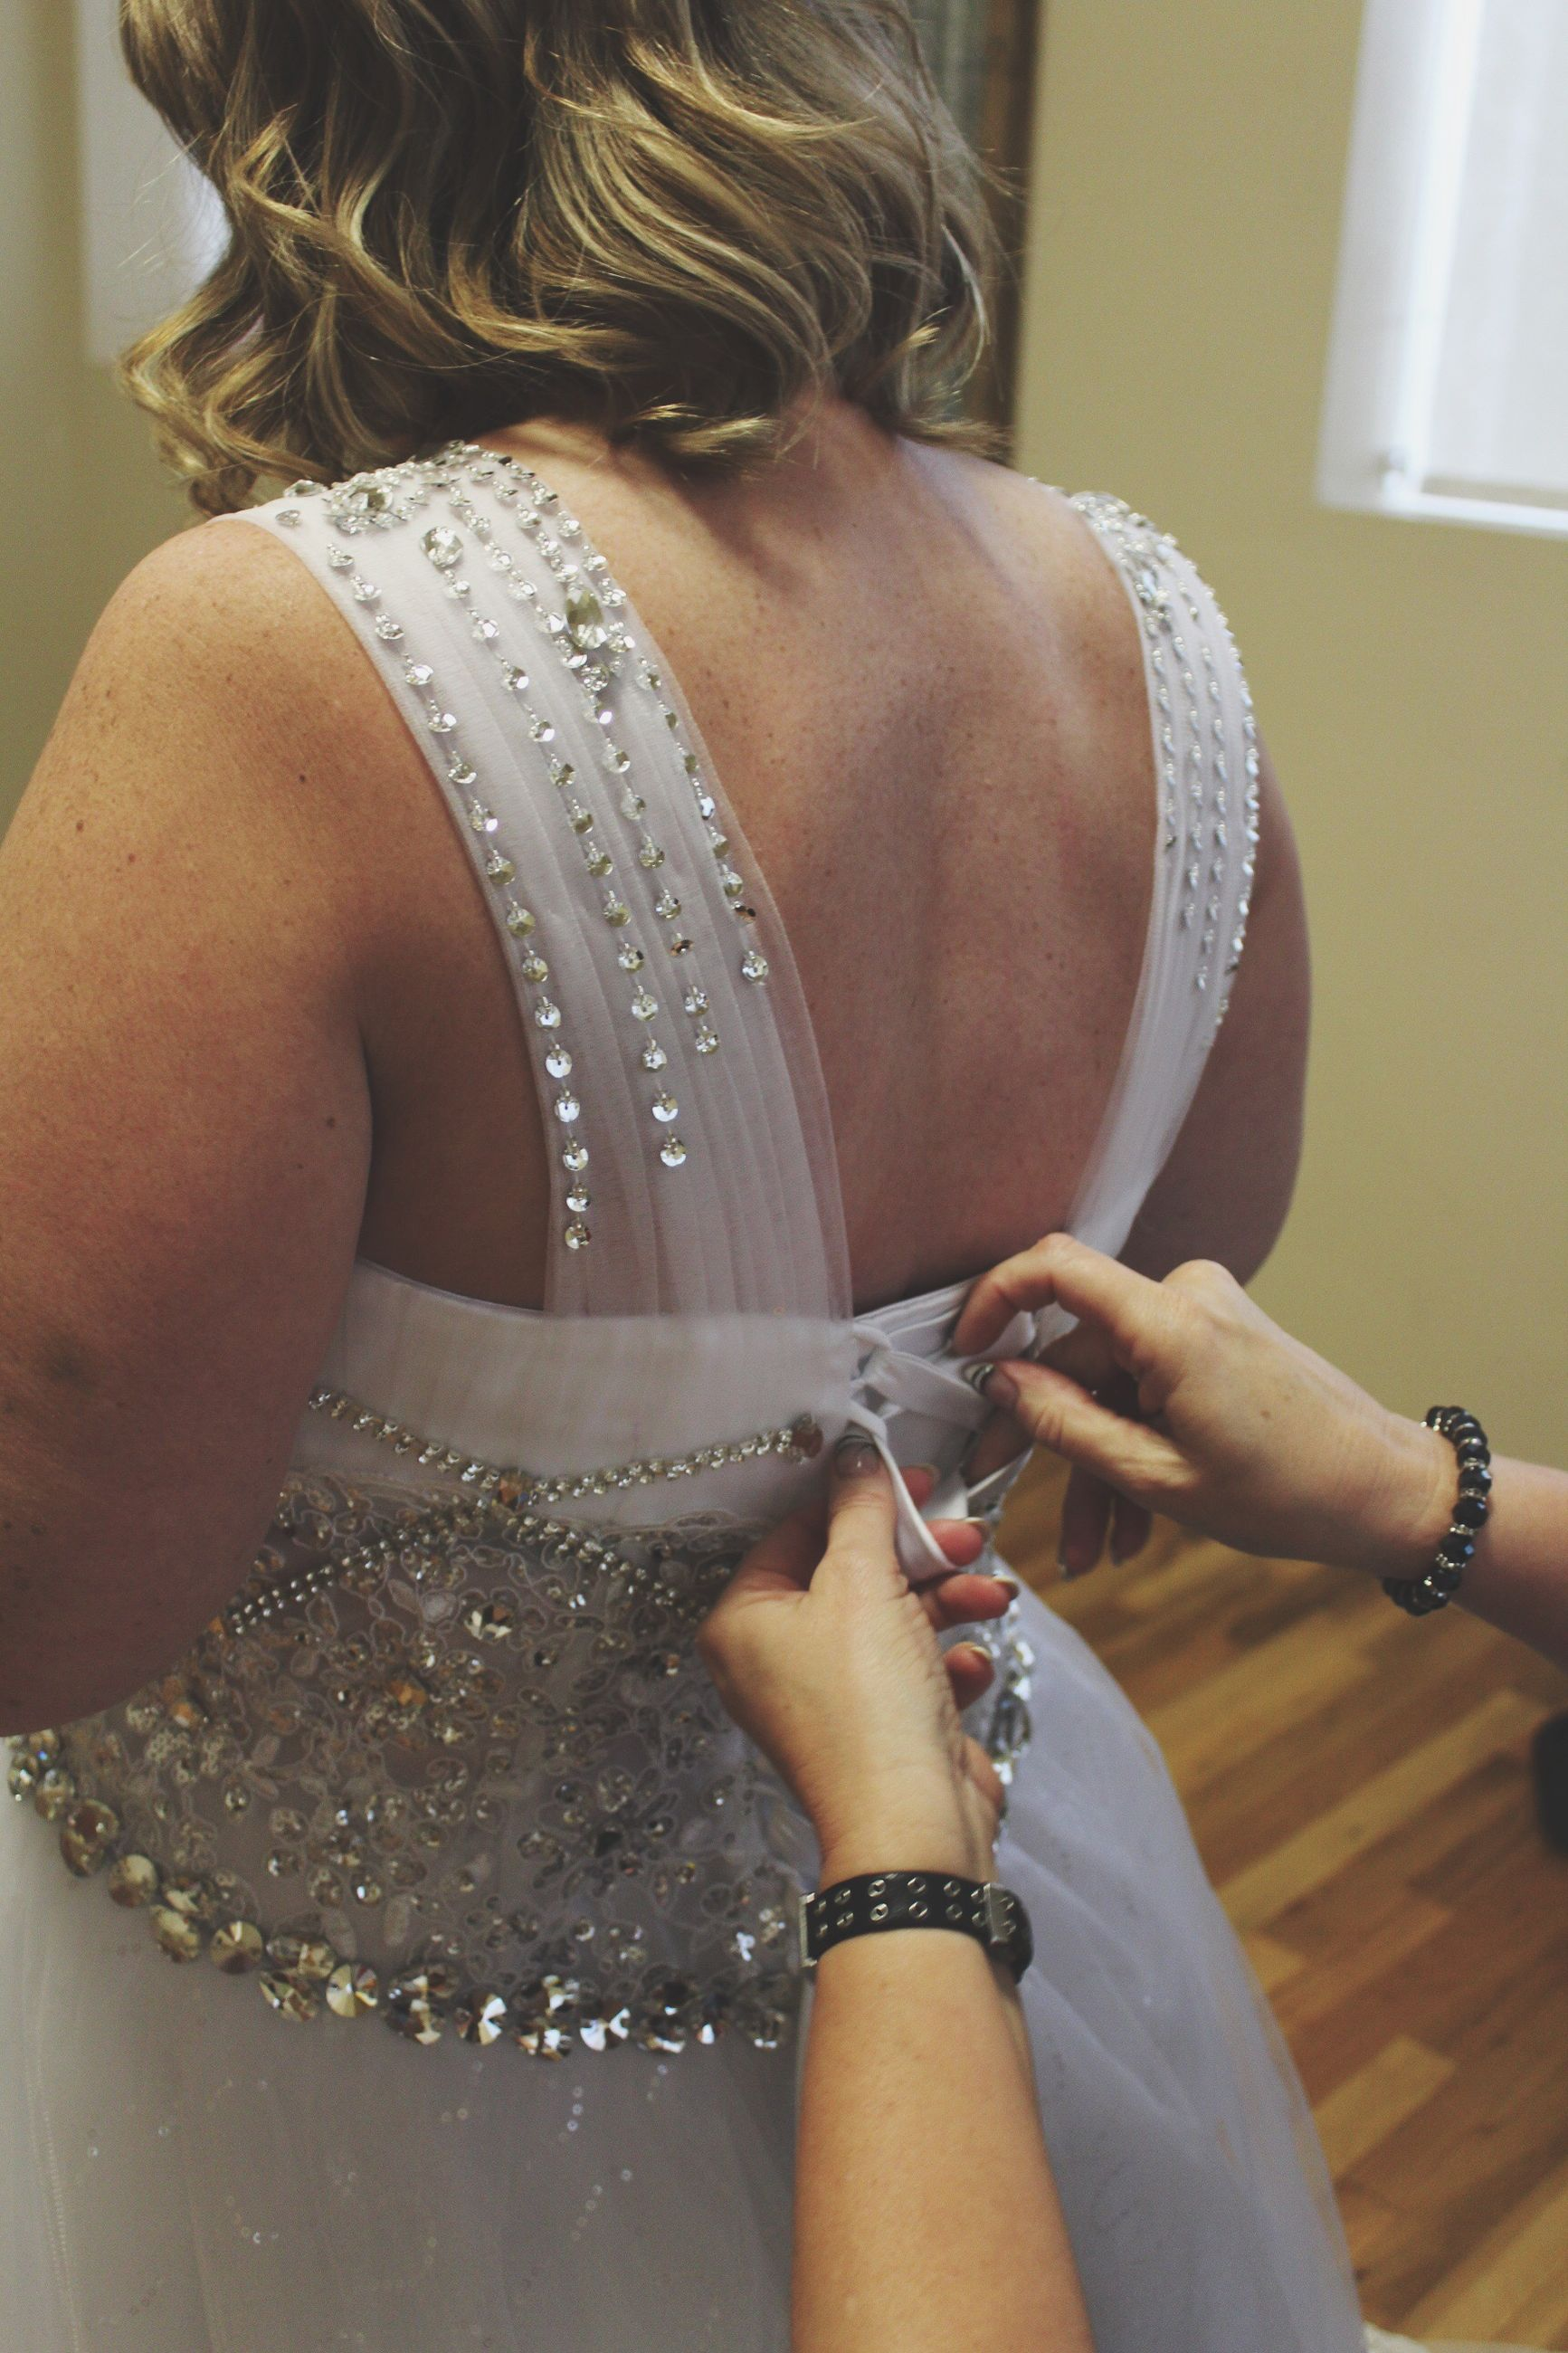 rear view, indoors, real people, preparation, one person, women, bride, day, close-up, young adult, adult, people